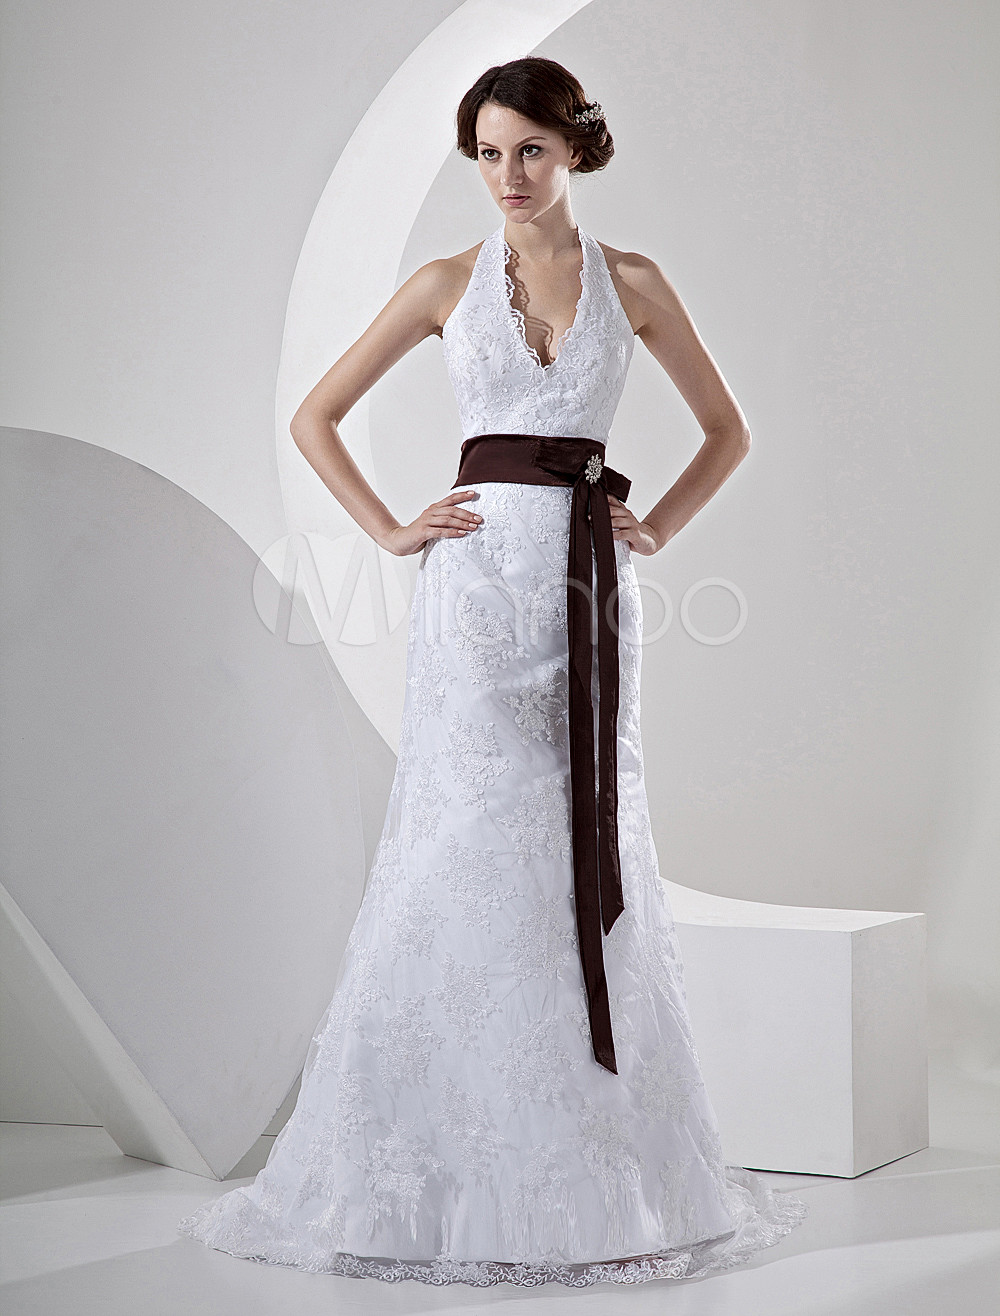 Mermaid V Neck Halter Sash Lace Satin Wedding Dress